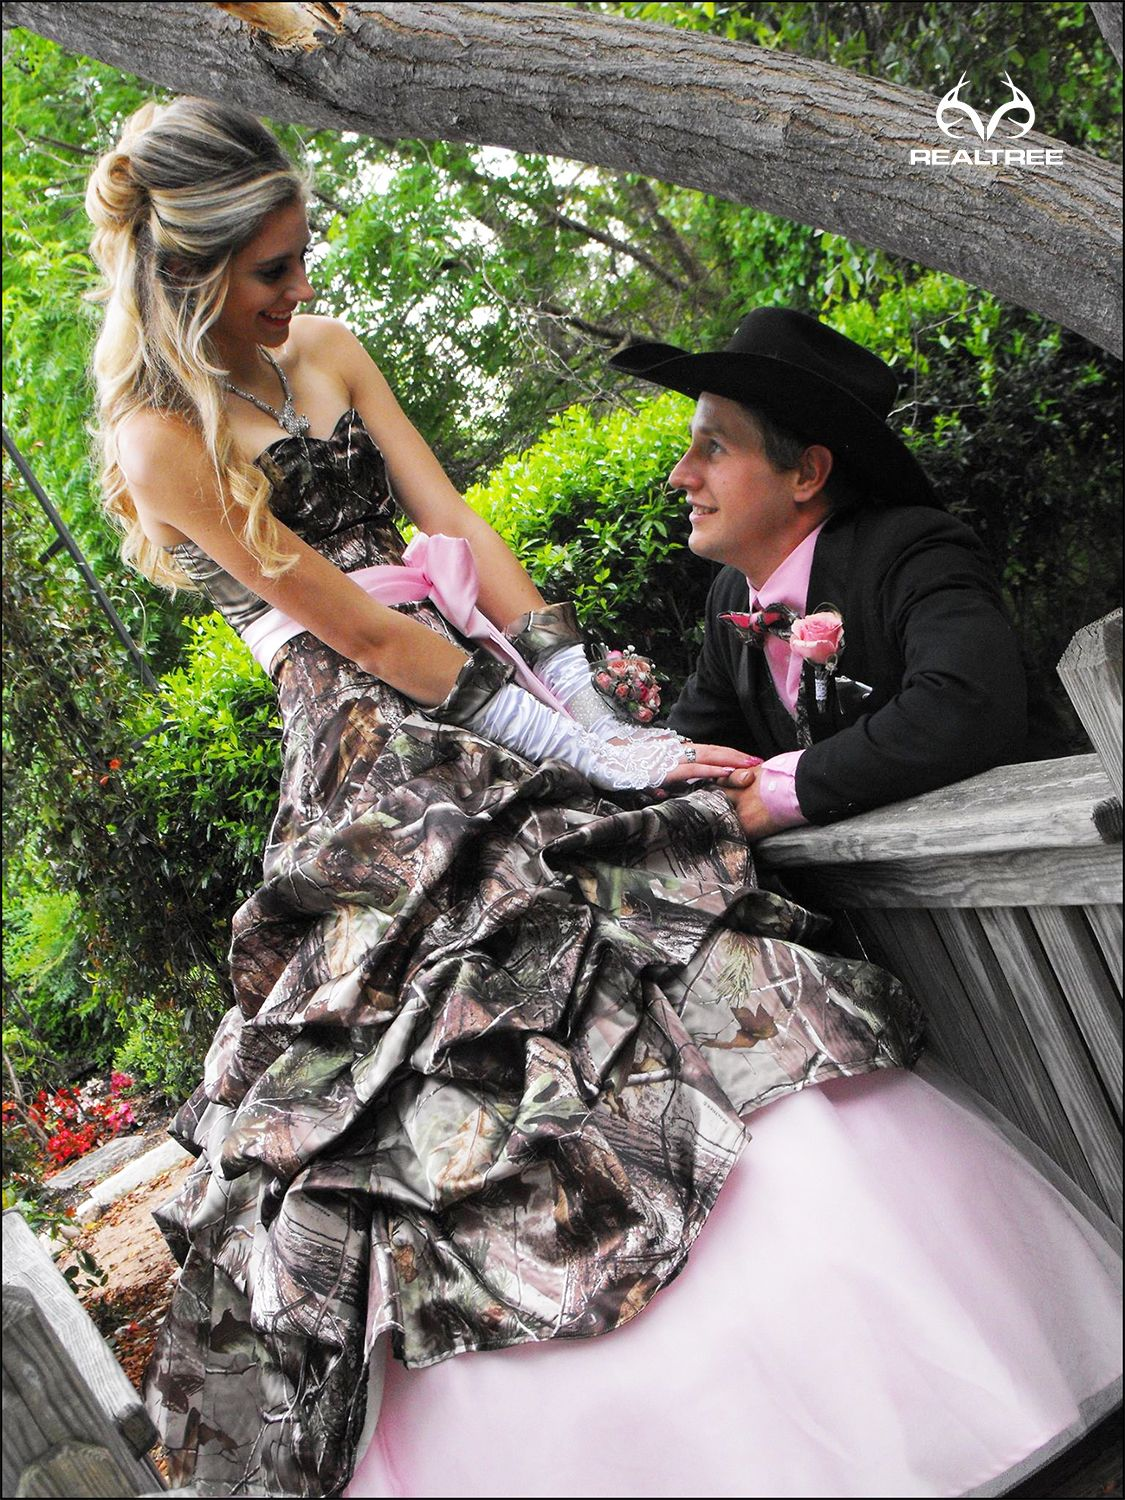 This has been the Realtree dress of her dreams for two years. Who ...